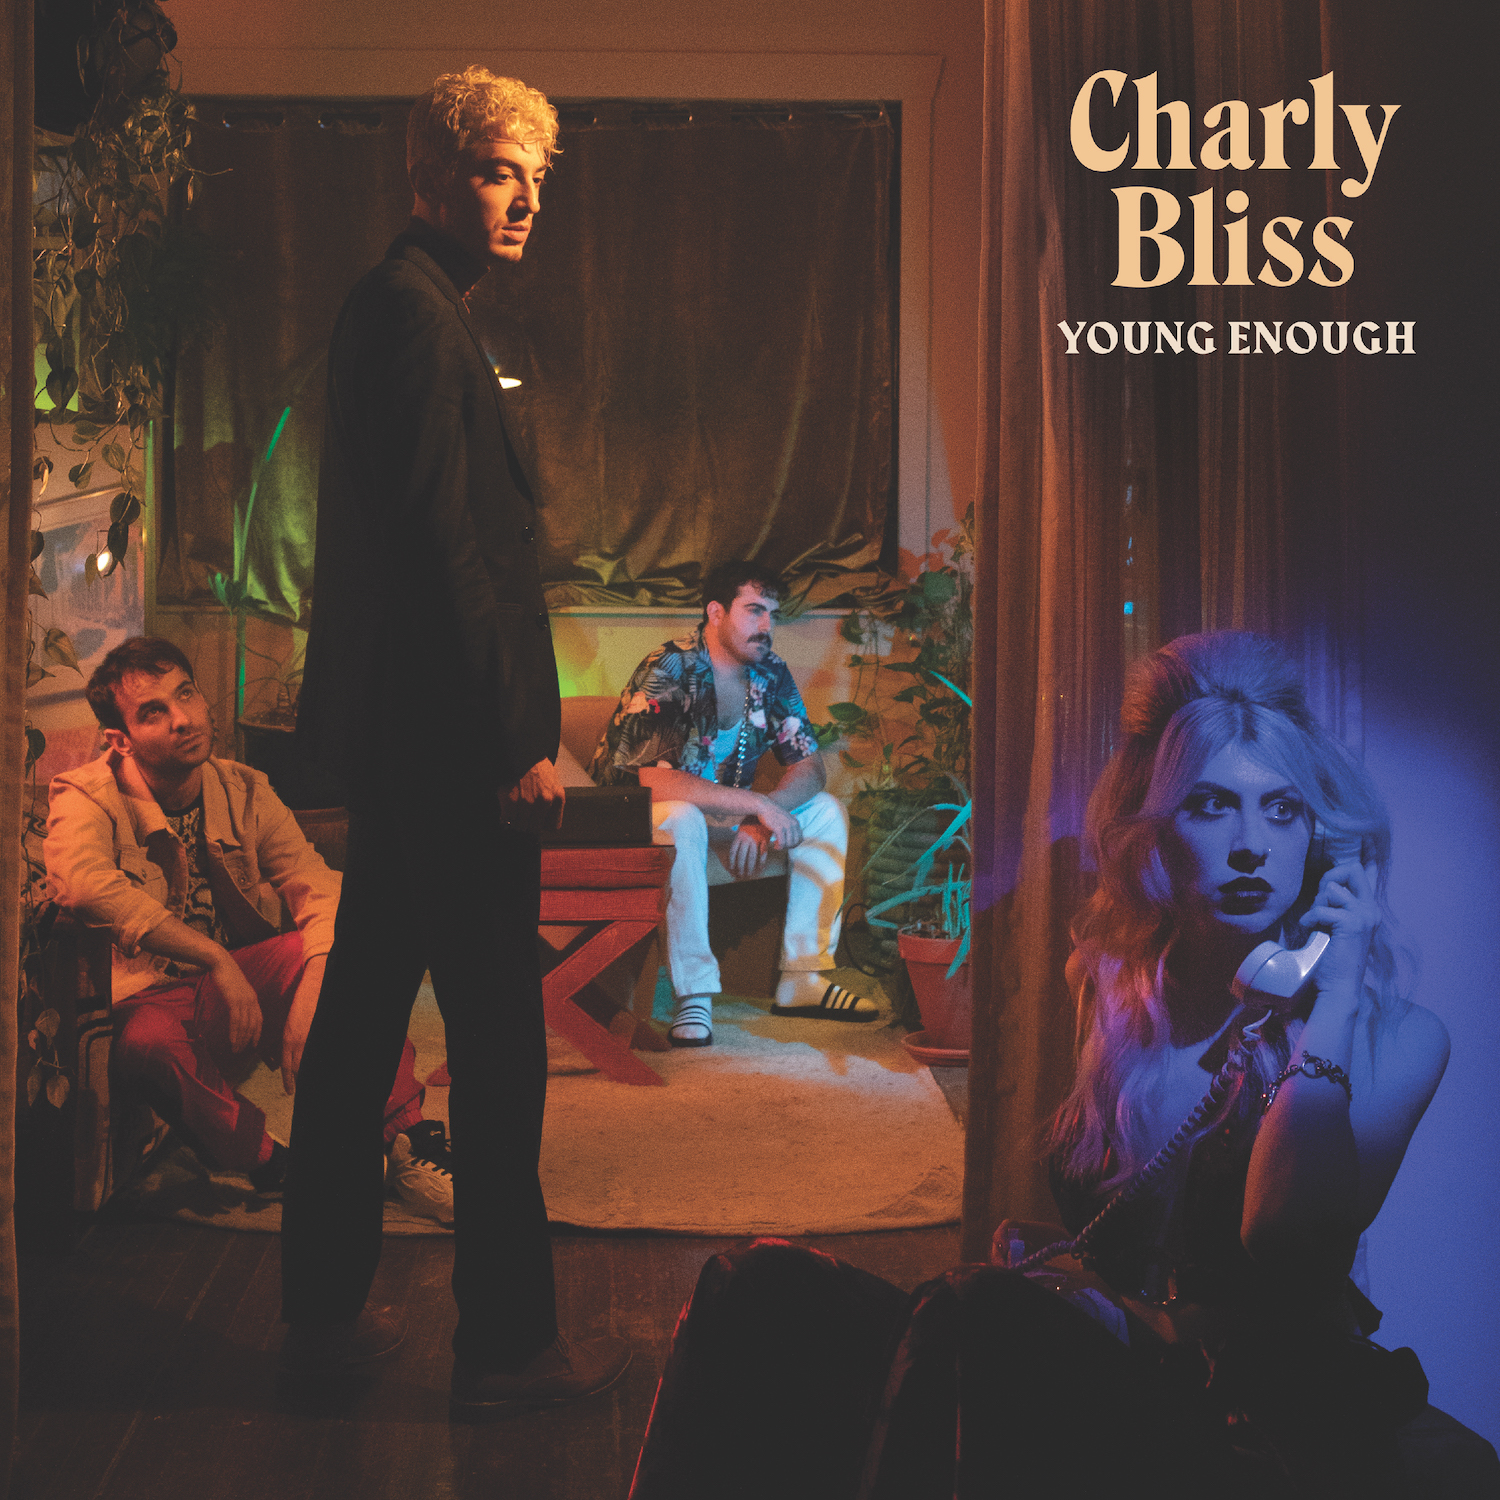 Charly Bliss Young Enough Album Cover Artwork